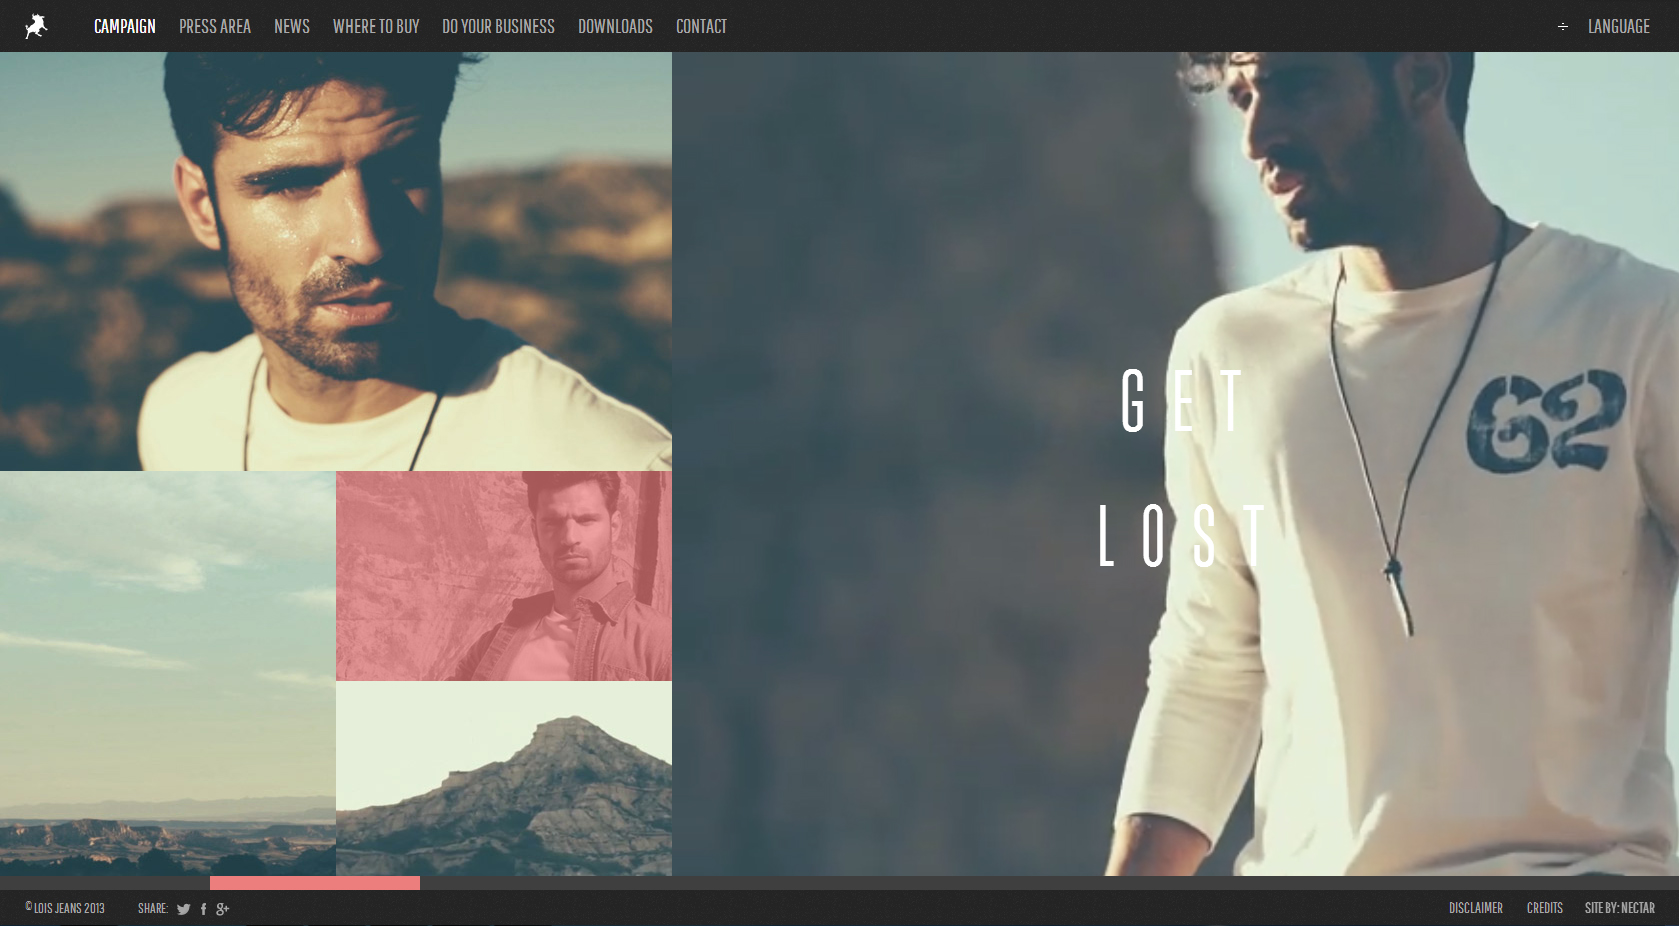 Loisjeans Website with Video Background